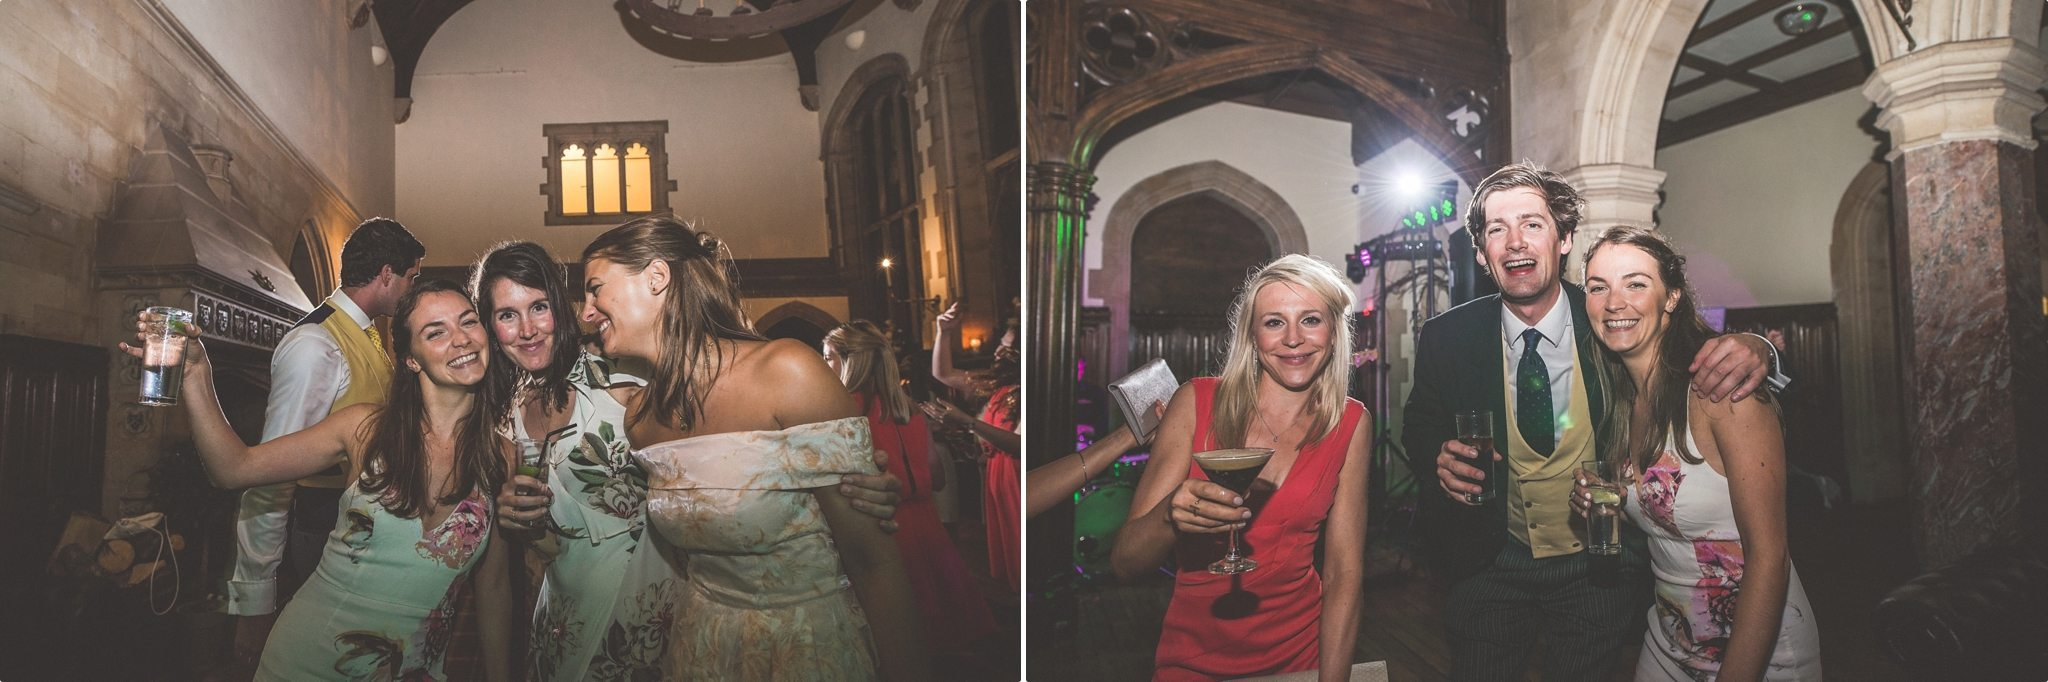 st-audries-park-wedding-maria-assia-photography-686